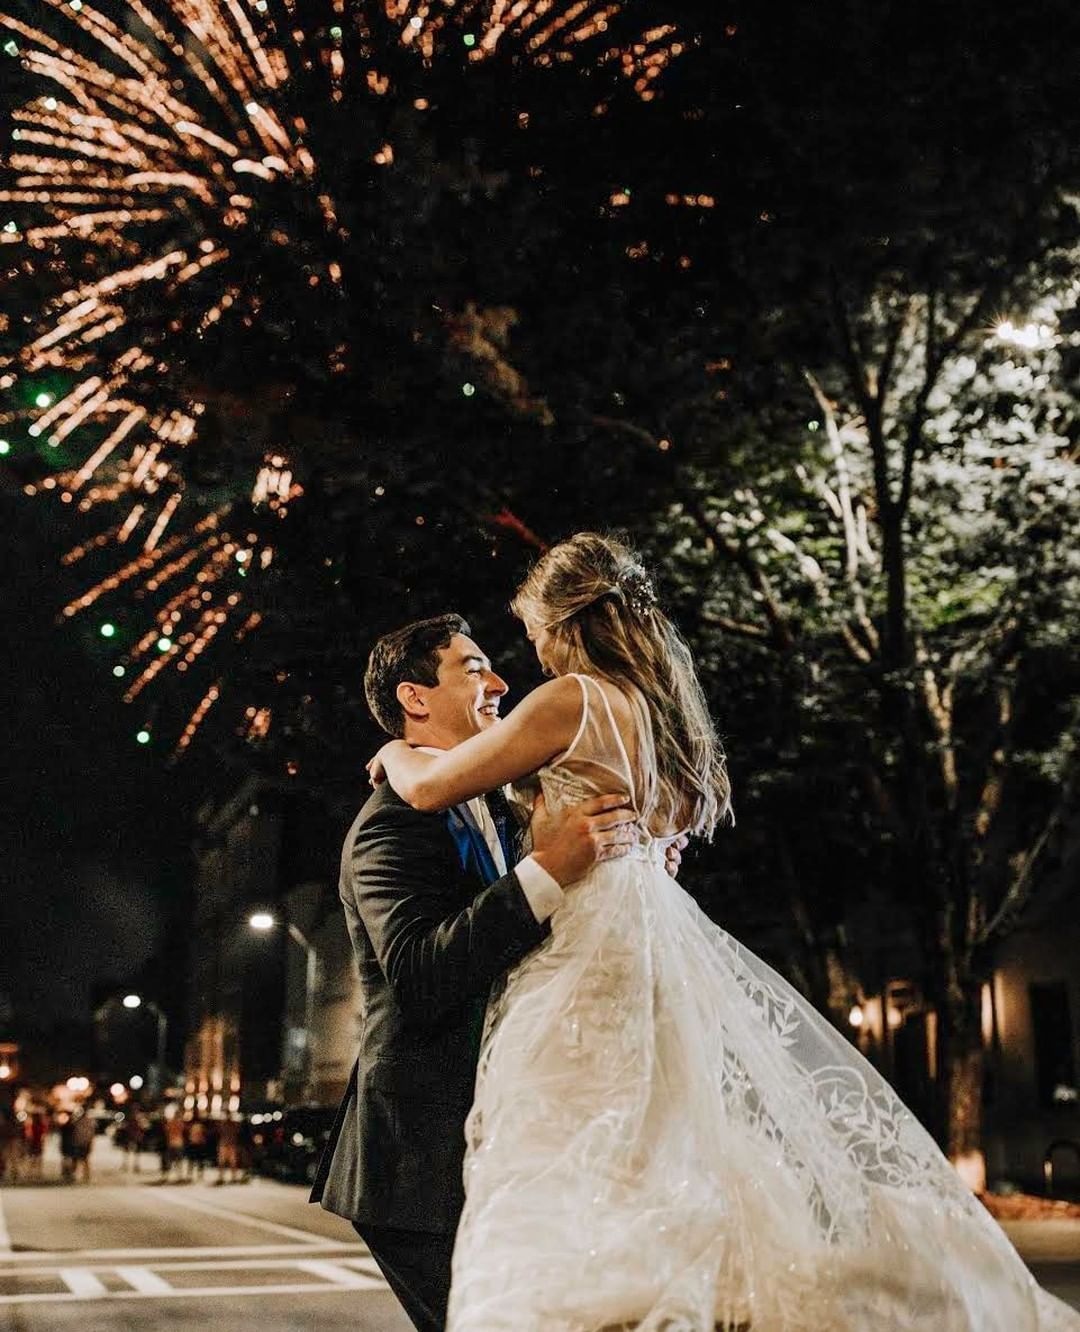 8 Things To Do After Your Wedding - Inspired By This